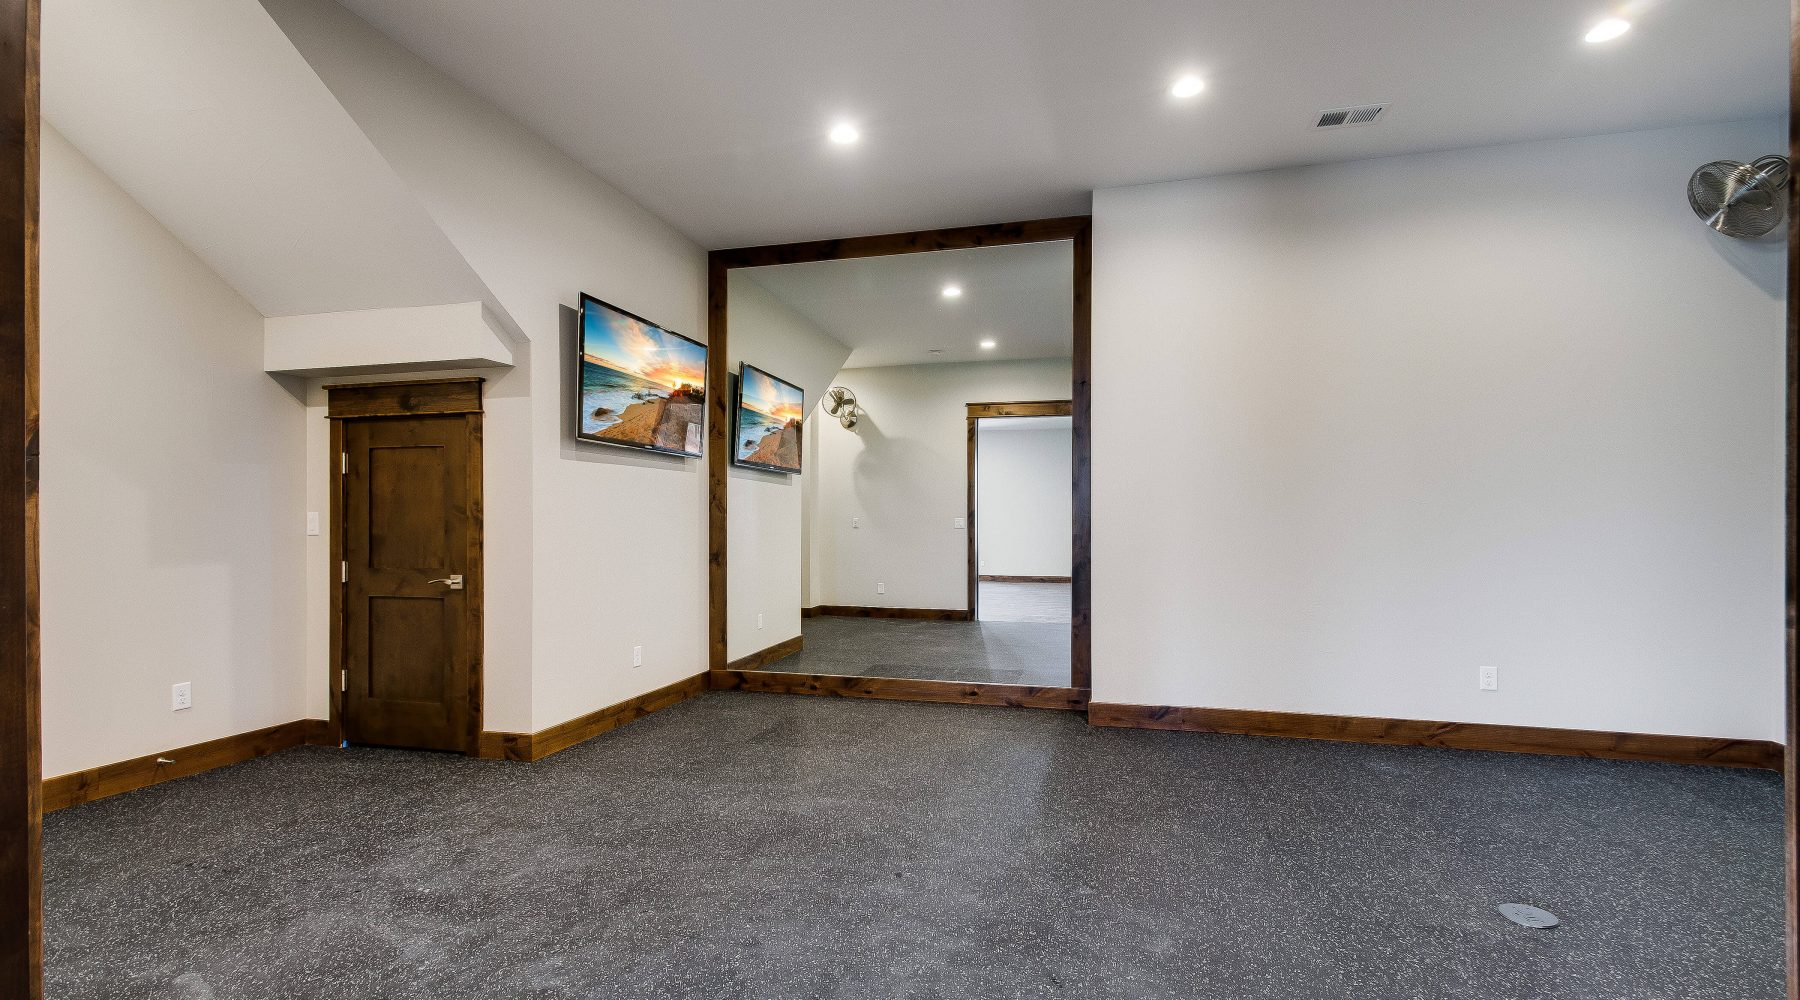 2466 Spruce Meadows Dr-print-037-38-Workout Room-4200x2782-300dpi